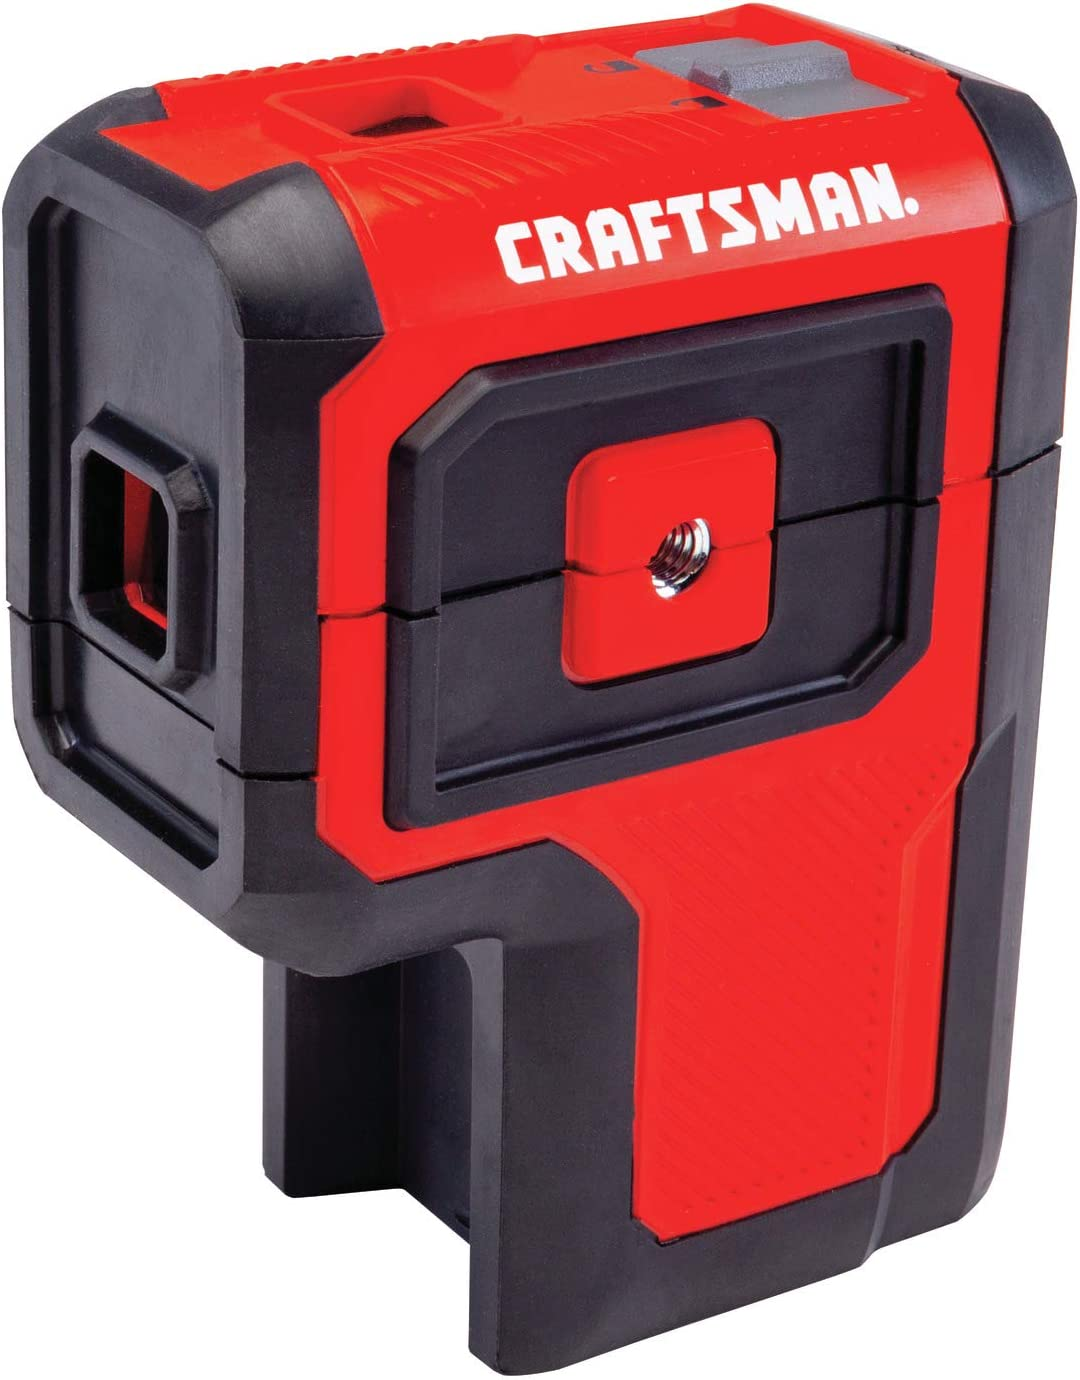 Craftsman 4 Red Tool Case Replacement Latch Clip Fastener  NEW  lot 4